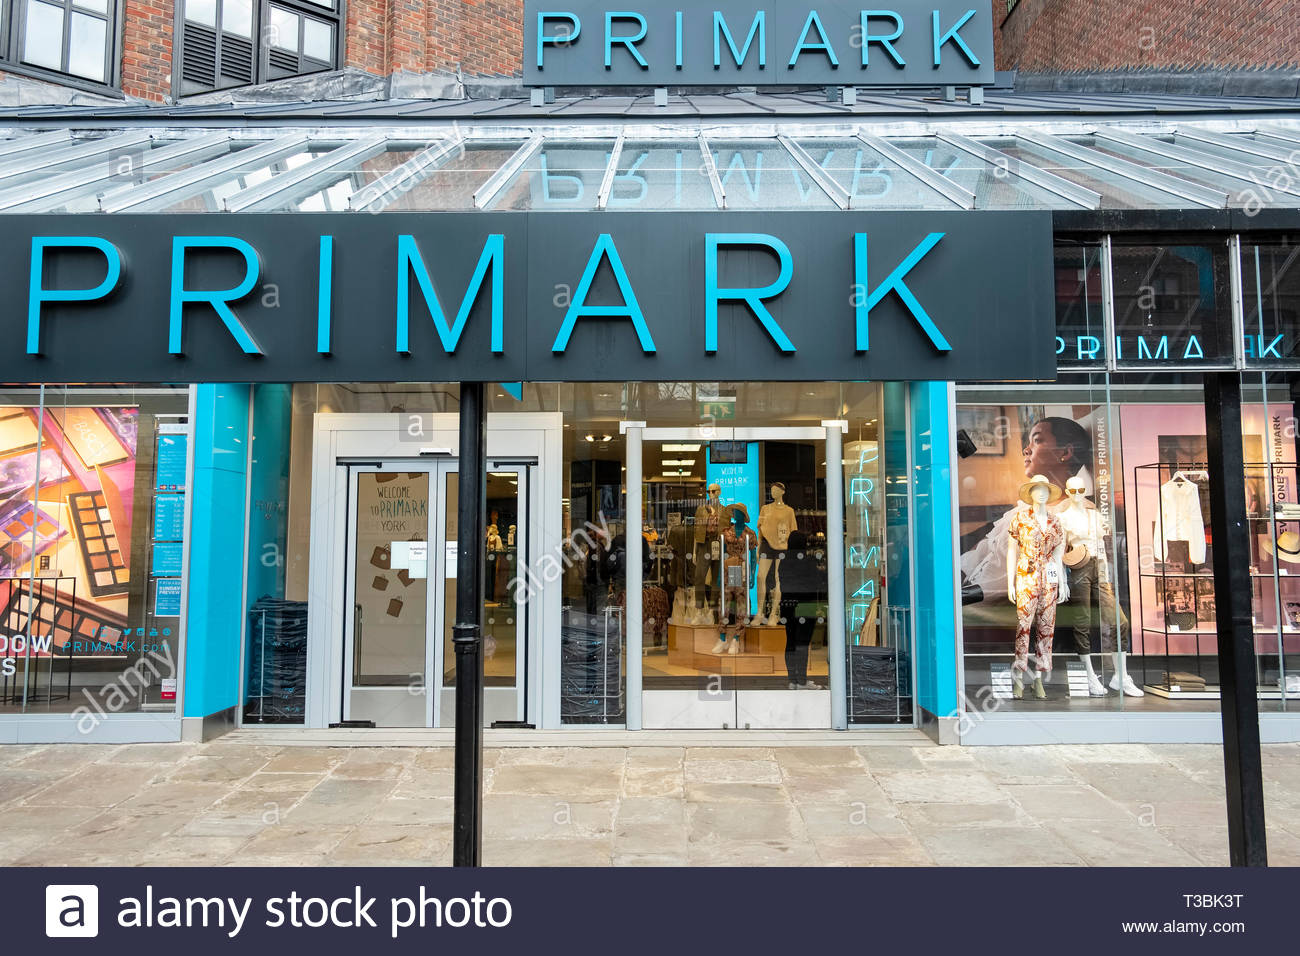 Primark Coppergate Shopping Centre York North Yorkshire England UK - Stock Image